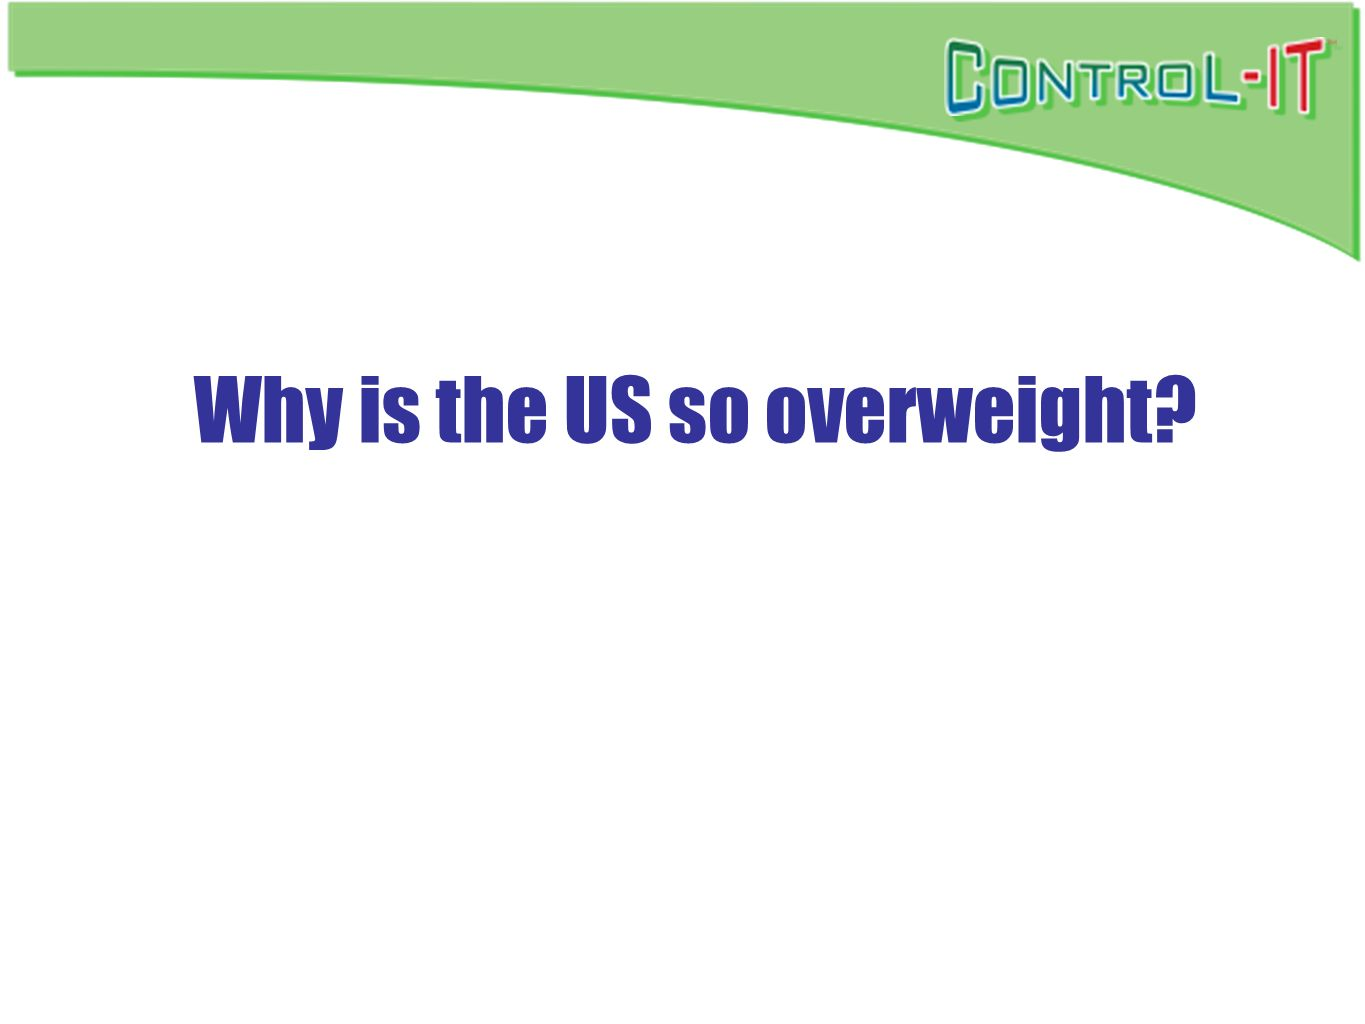 Why is the US so overweight